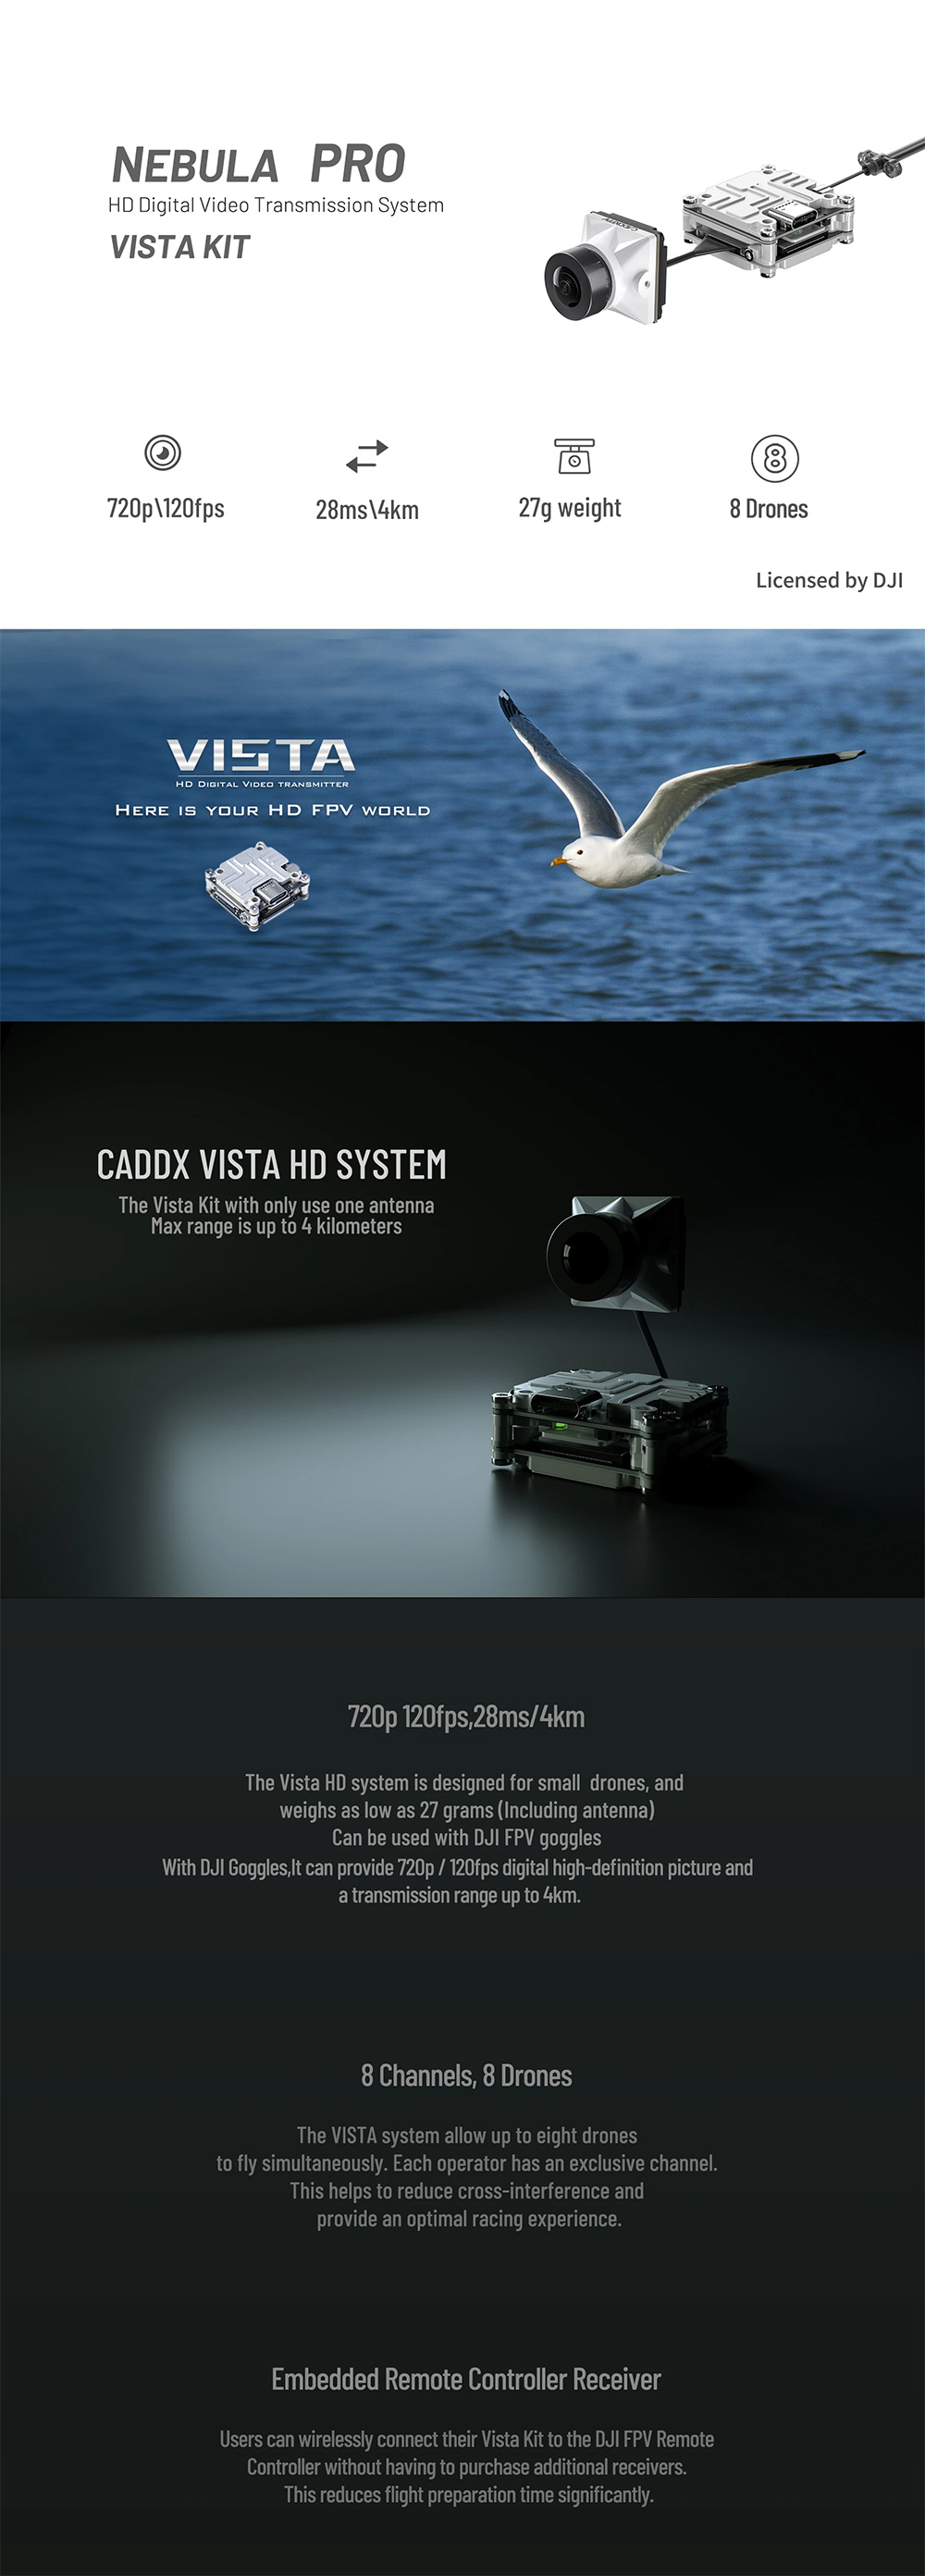 Nebula-Pro-Vista-Kit-720p120fps-low-latency-HD-digital-FPV-system-banner-tall